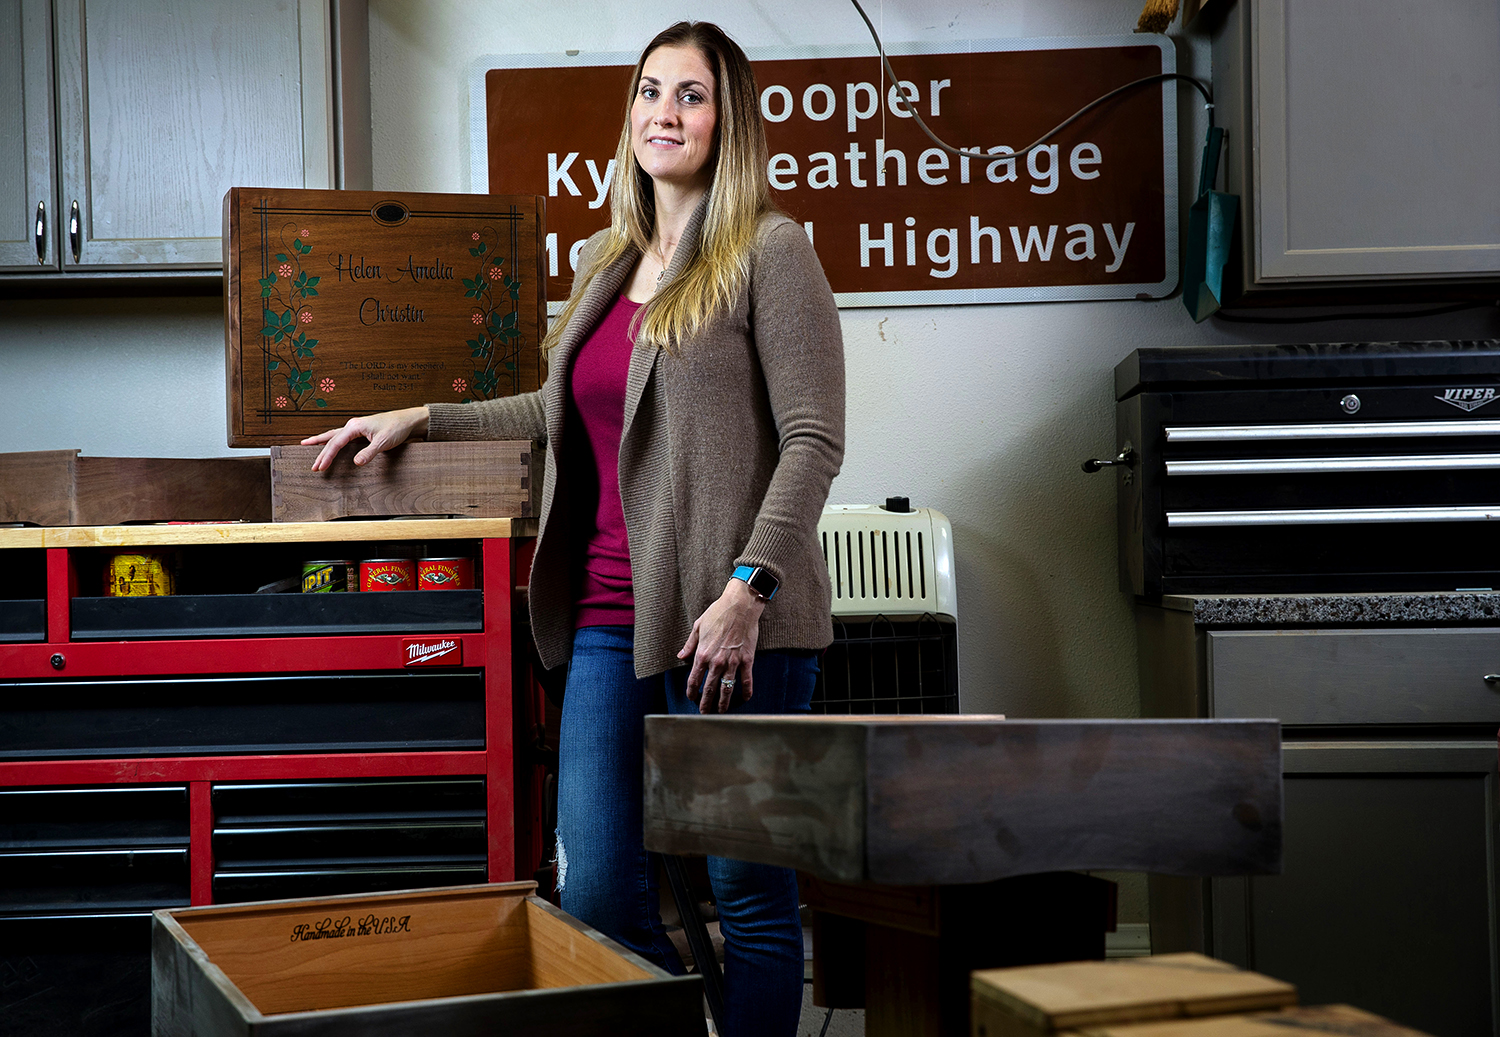 Sarah Deatherage-Steele founded Comforting Keepsakes as a way to help other people find healing and peace by storing the personal items of lost loved ones in a custom, hand-crafted box she creates. [Ted Schurter/The State Journal-Register]